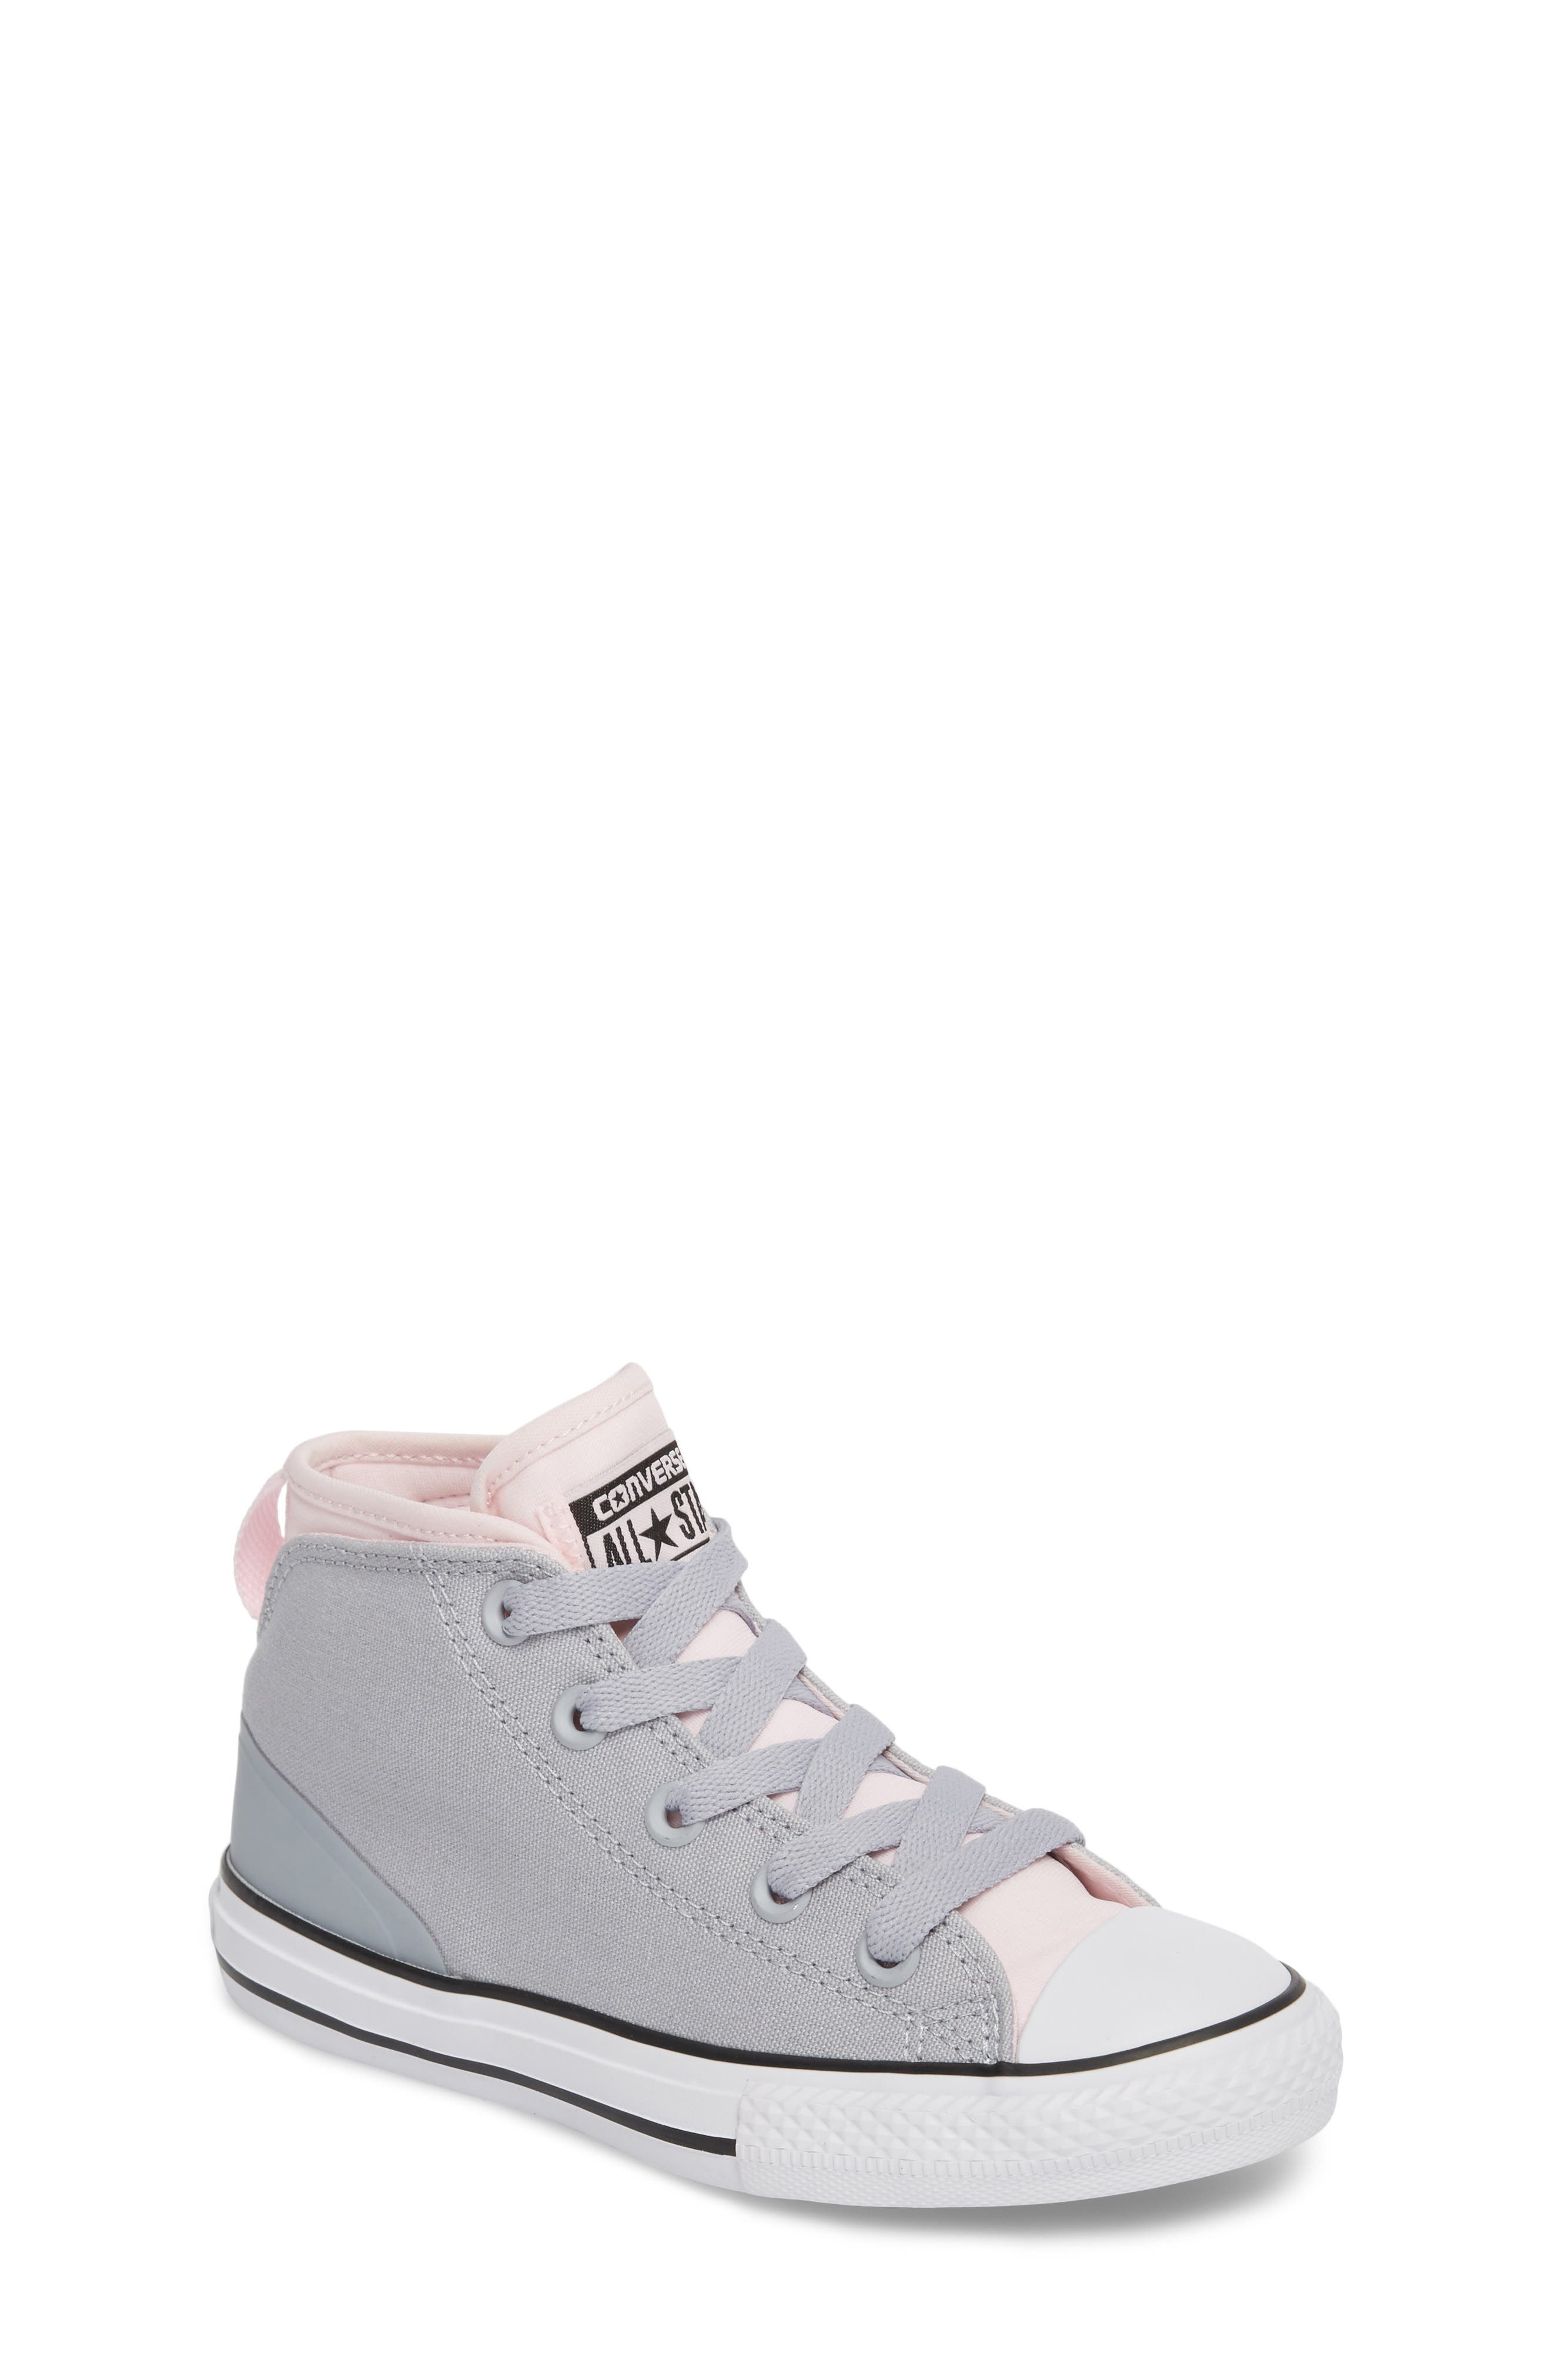 Alternate Image 1 Selected - Converse Chuck Taylor® All Star® Syde Street High Top Sneaker (Baby, Walker, Toddler, Little Kid & Big Kid)